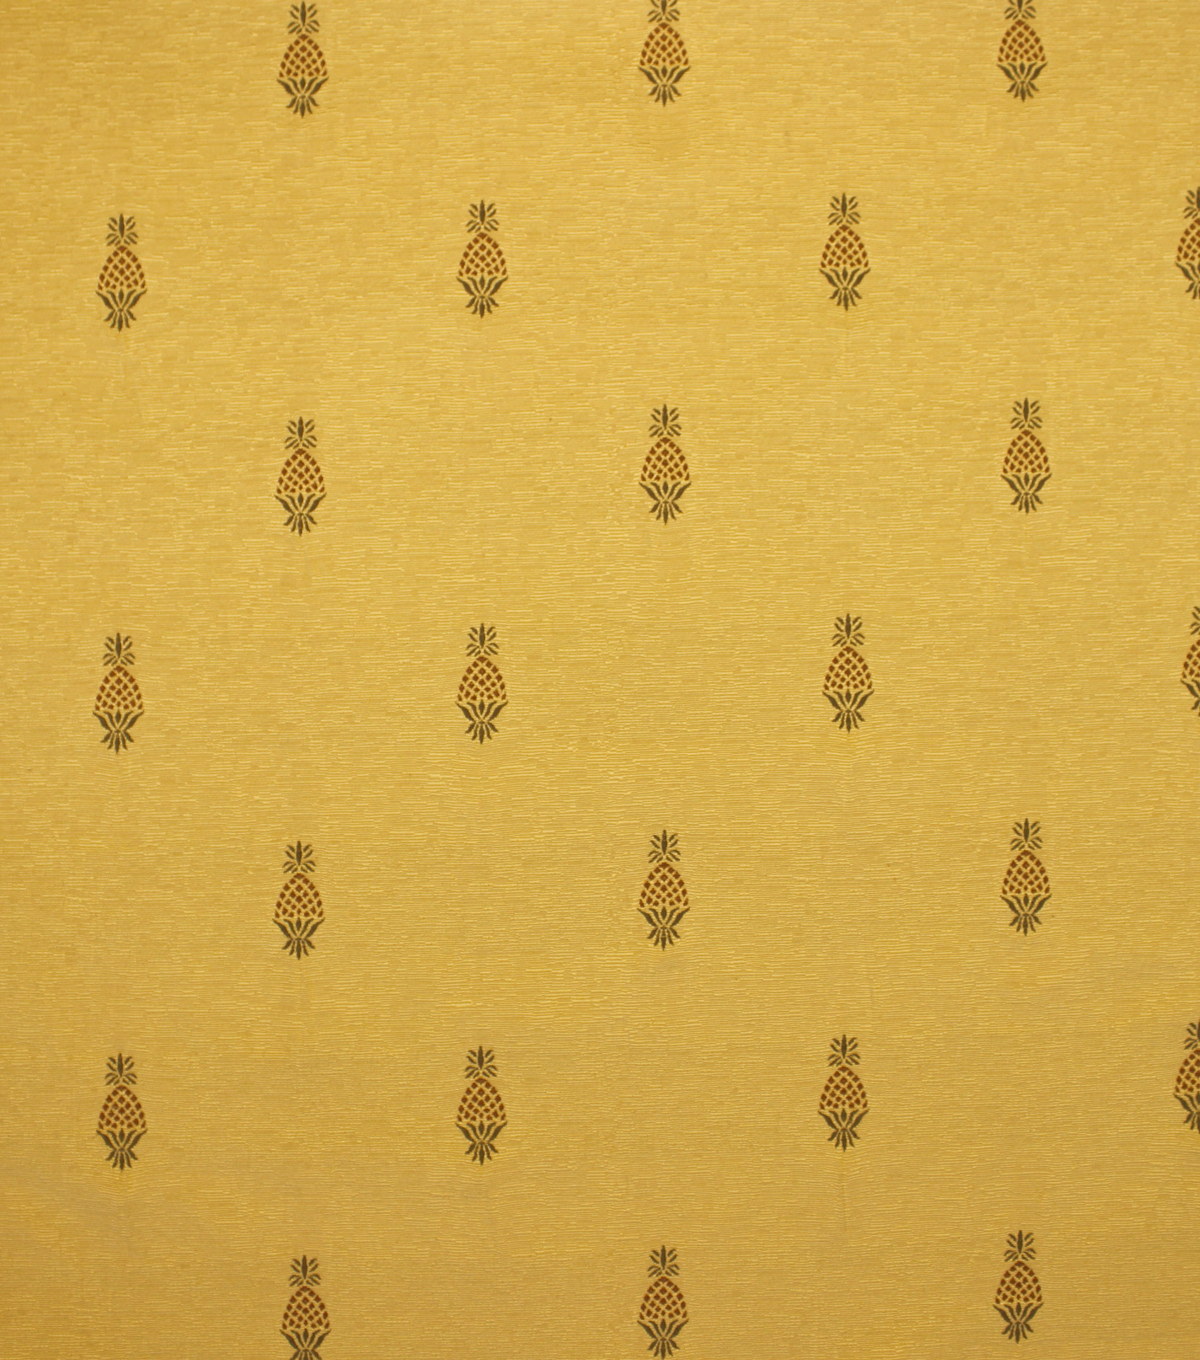 Home Decor 8\u0022x8\u0022 Fabric Swatch-Upholstery Fabric Barrow M6547-5137 Sunshine